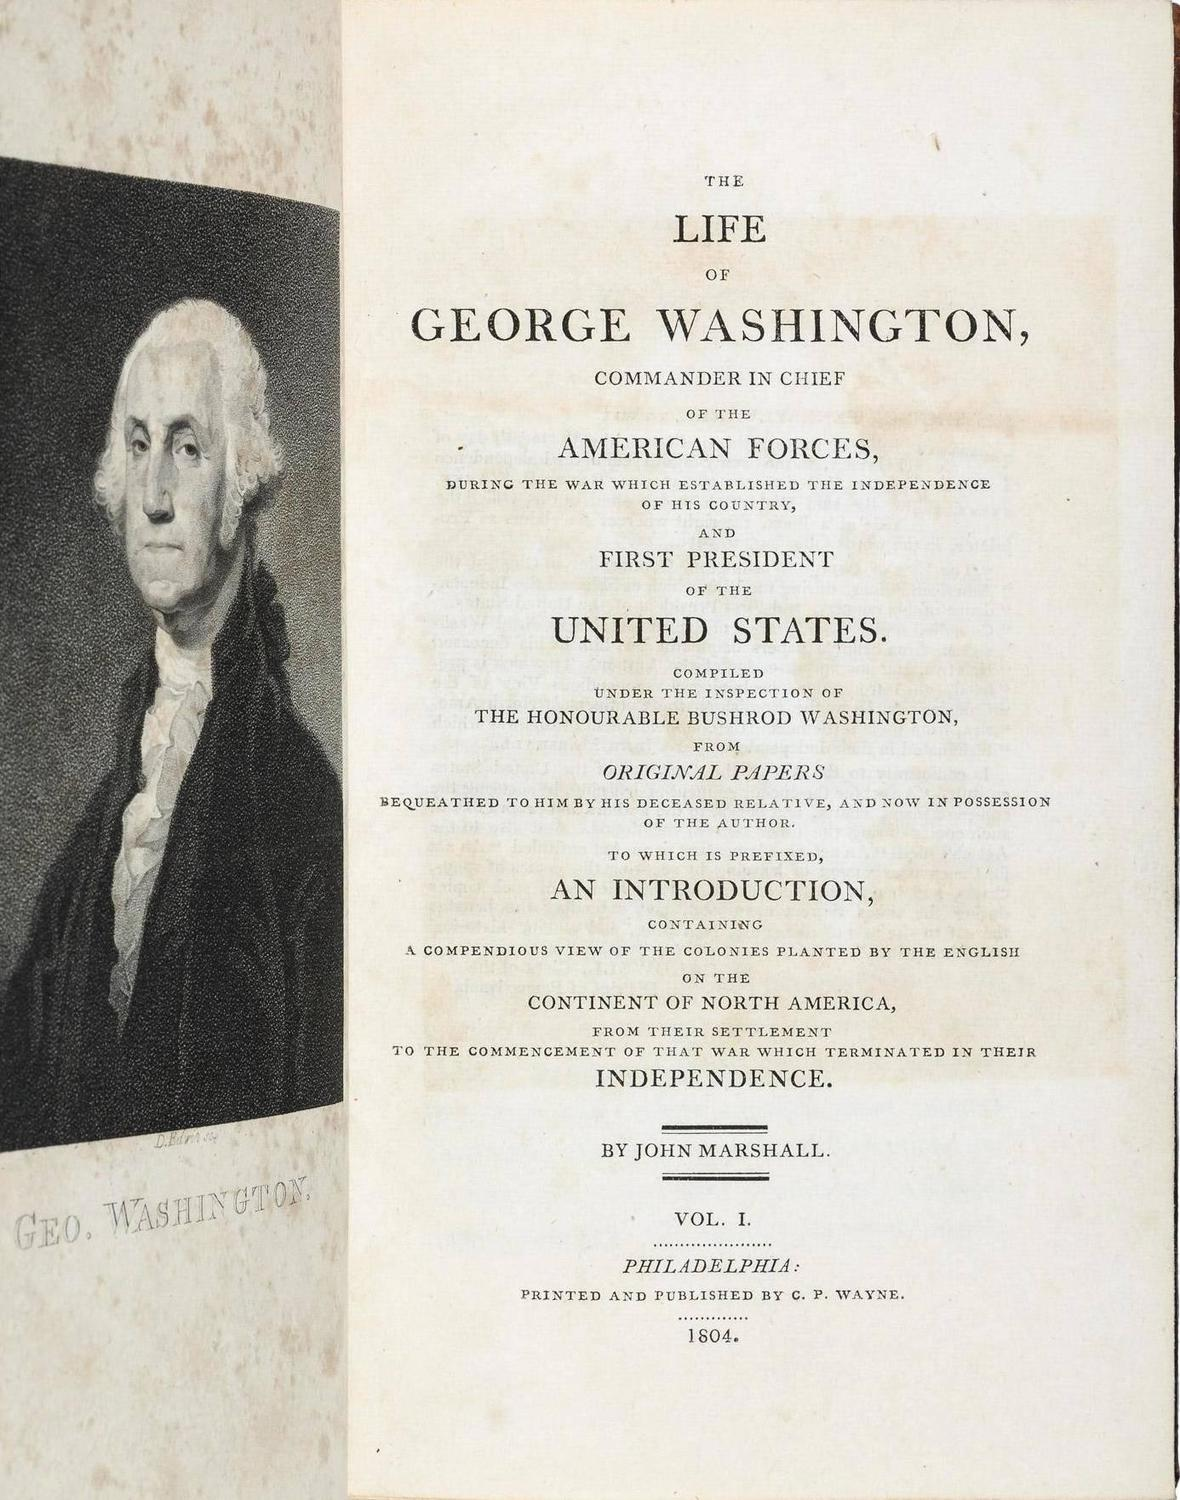 The Life of George Washington by Bancroft Aaron D D